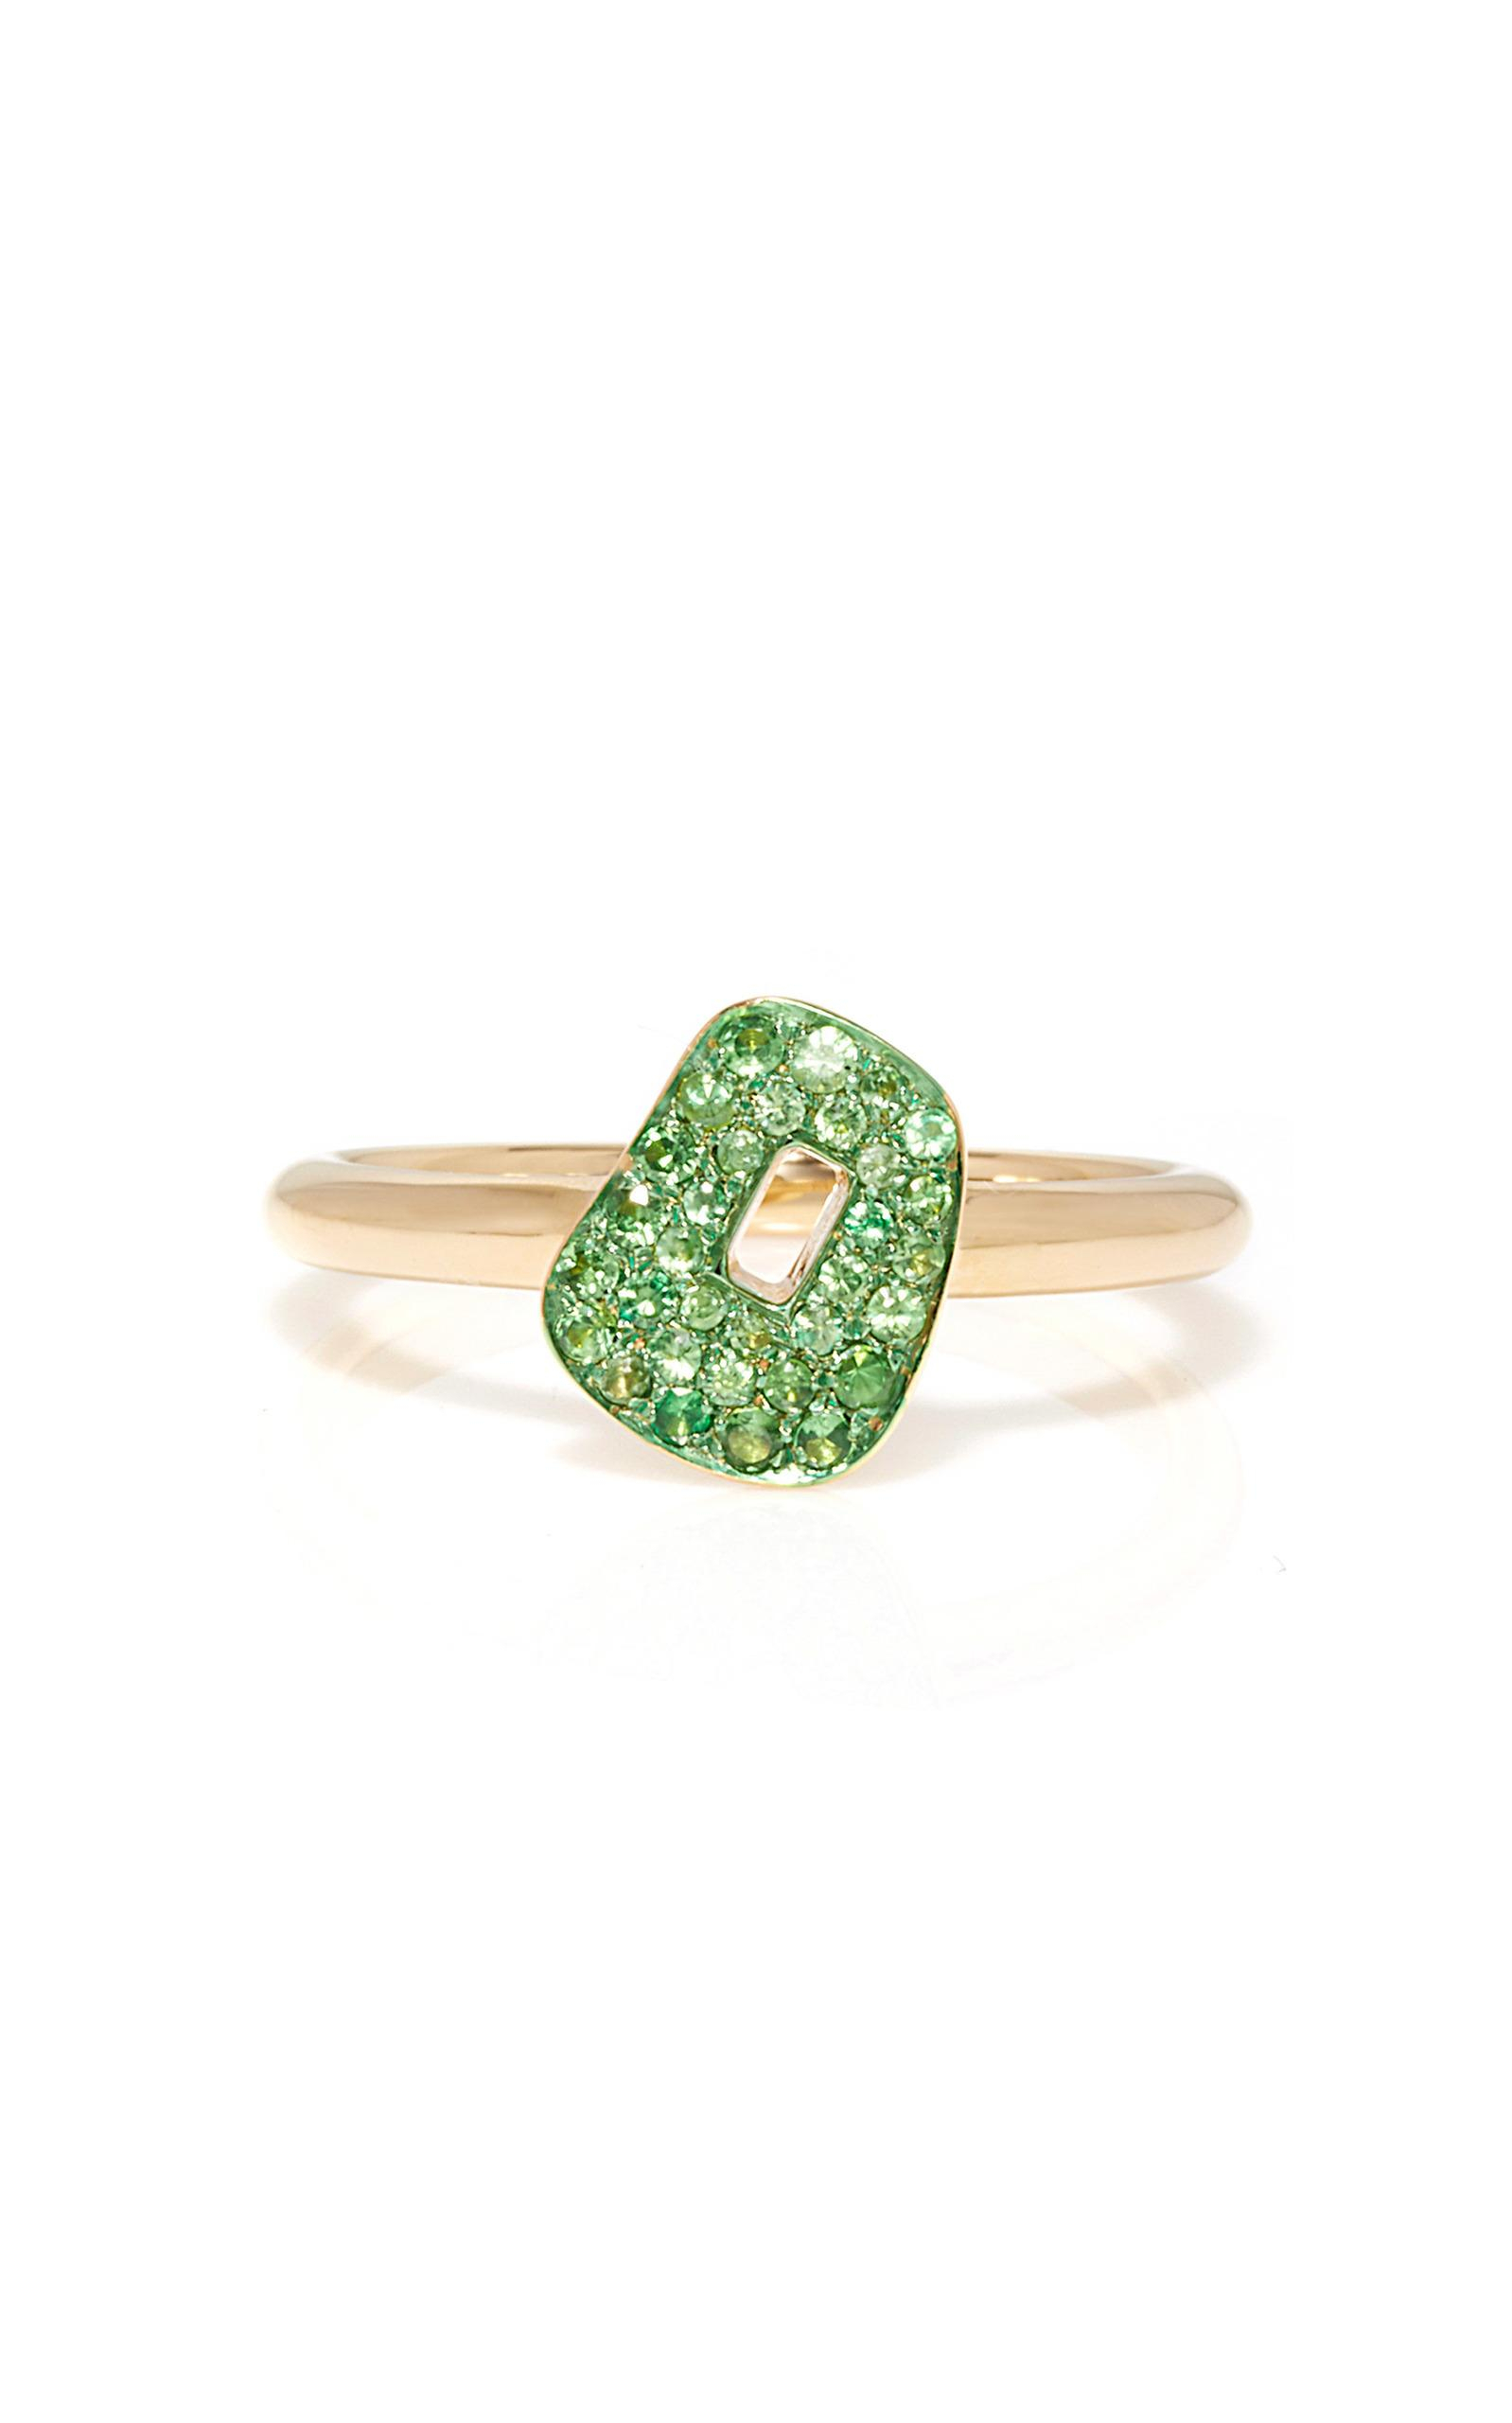 Mattioli Green Puzzle Ring With Tsavorites Within 2018 Pavé Puzzle Heart Rings (View 5 of 25)